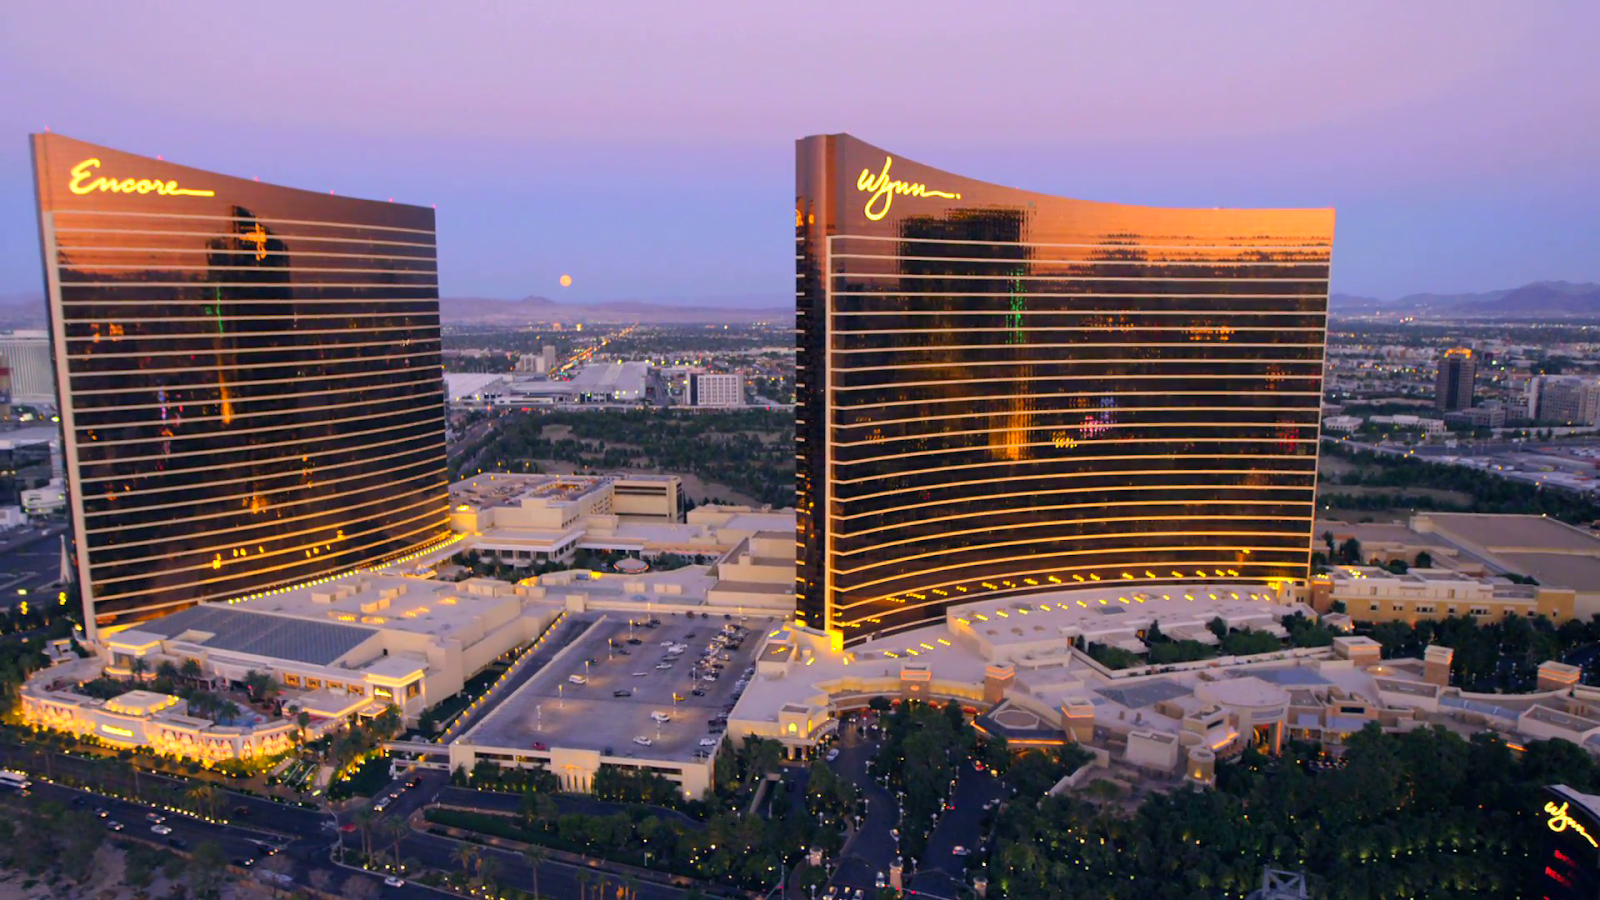 Receive a Panoramic room upgrade + up to $150 in resort credit.